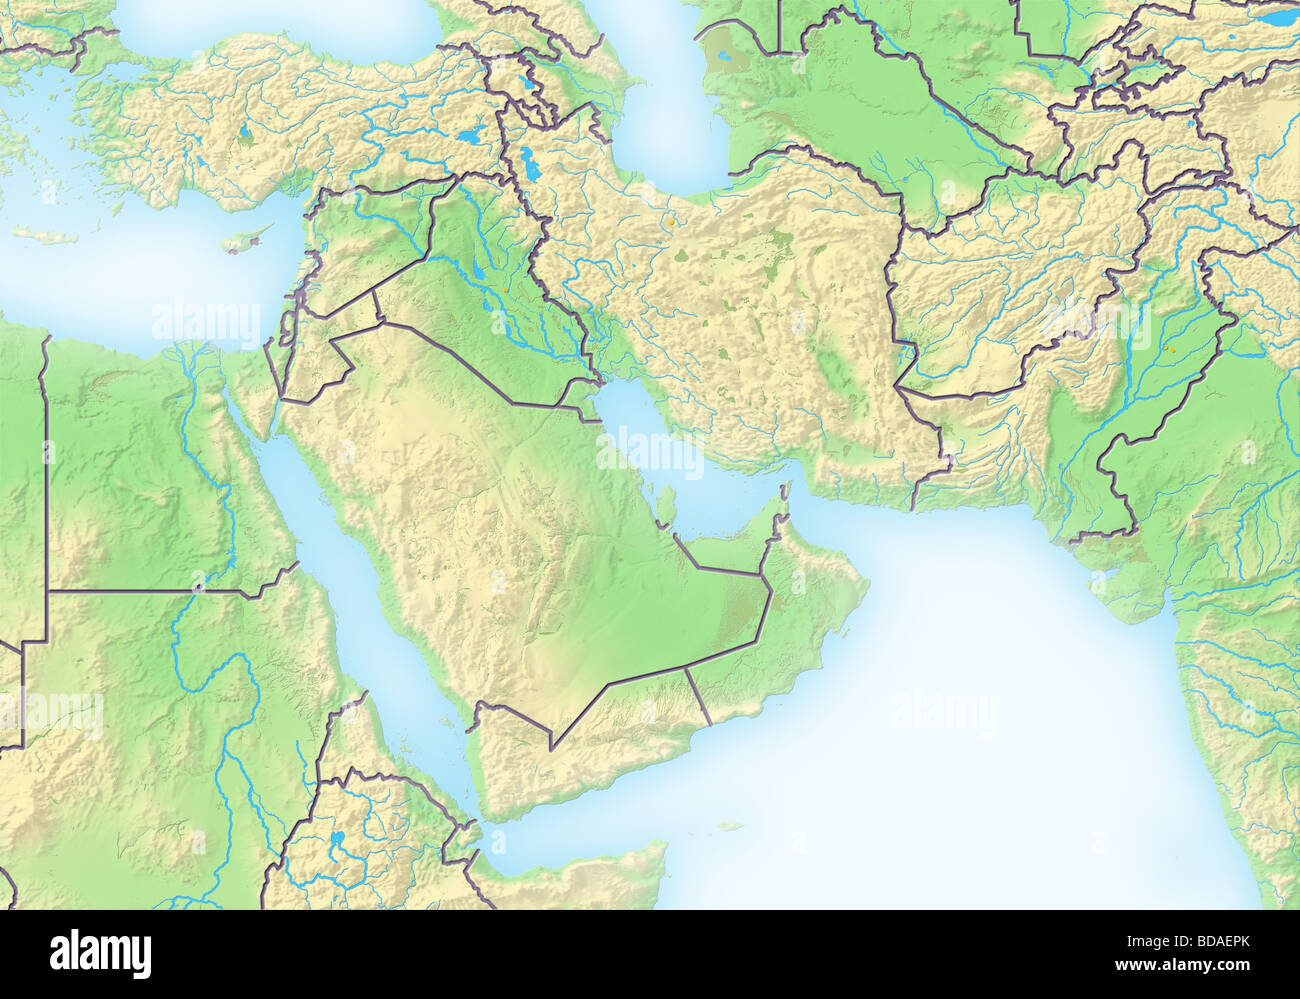 Middle East Topography Stock Photos Middle East Topography Stock